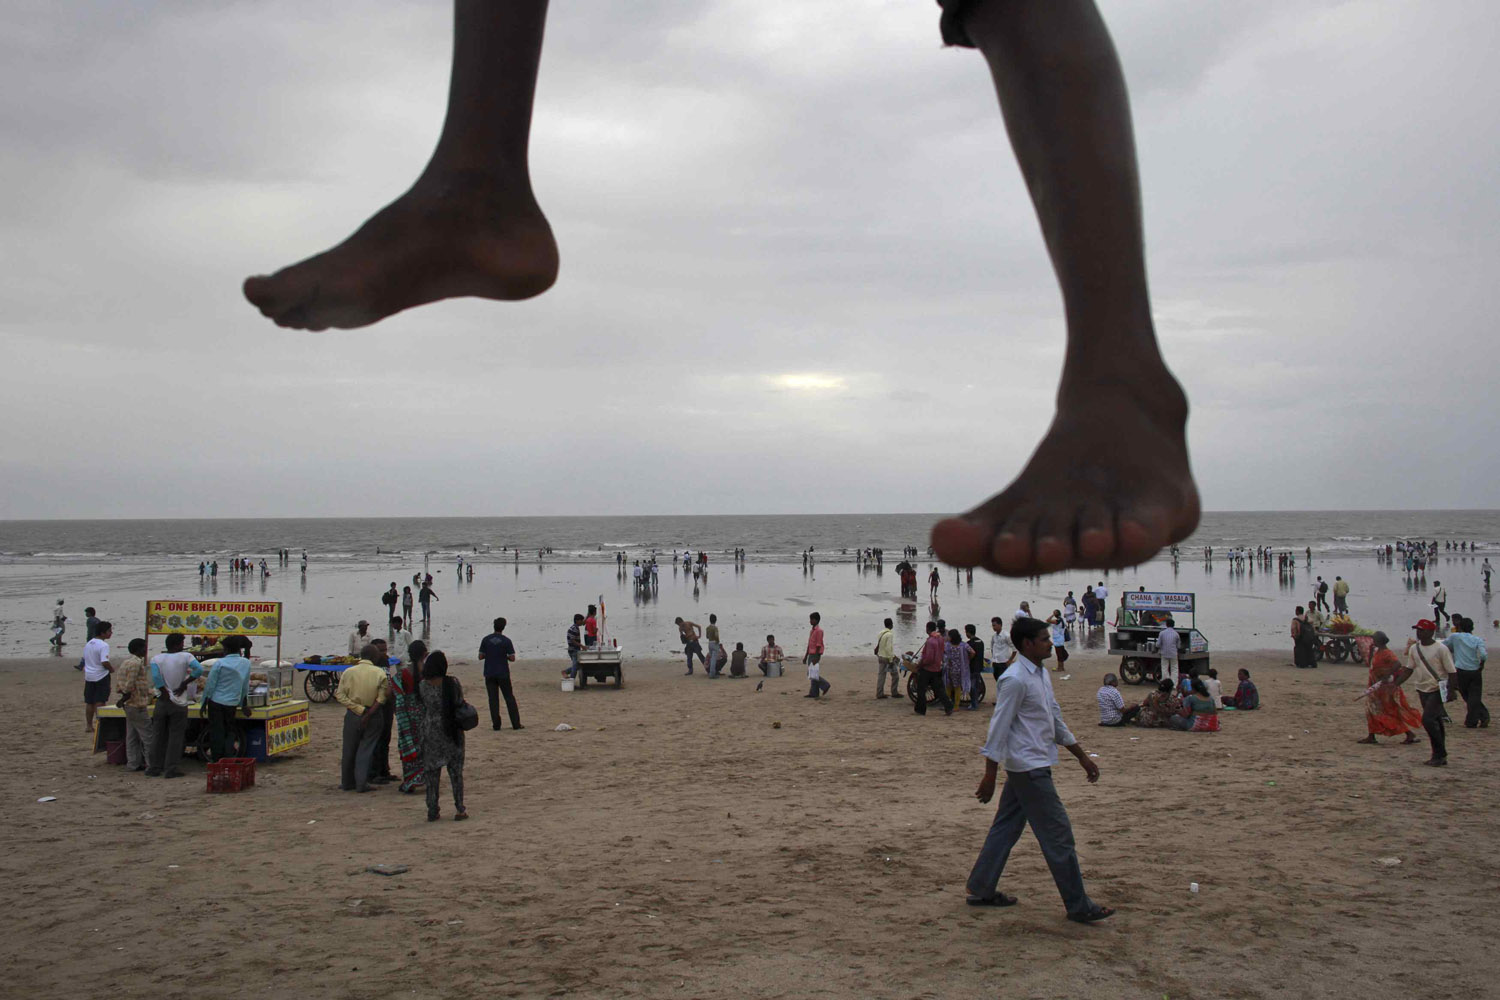 Sept. 14, 2012. A boy sits on wooden scaffolding which is used as a temporary watch tower as people stroll along Juhu beach in Mumbai.